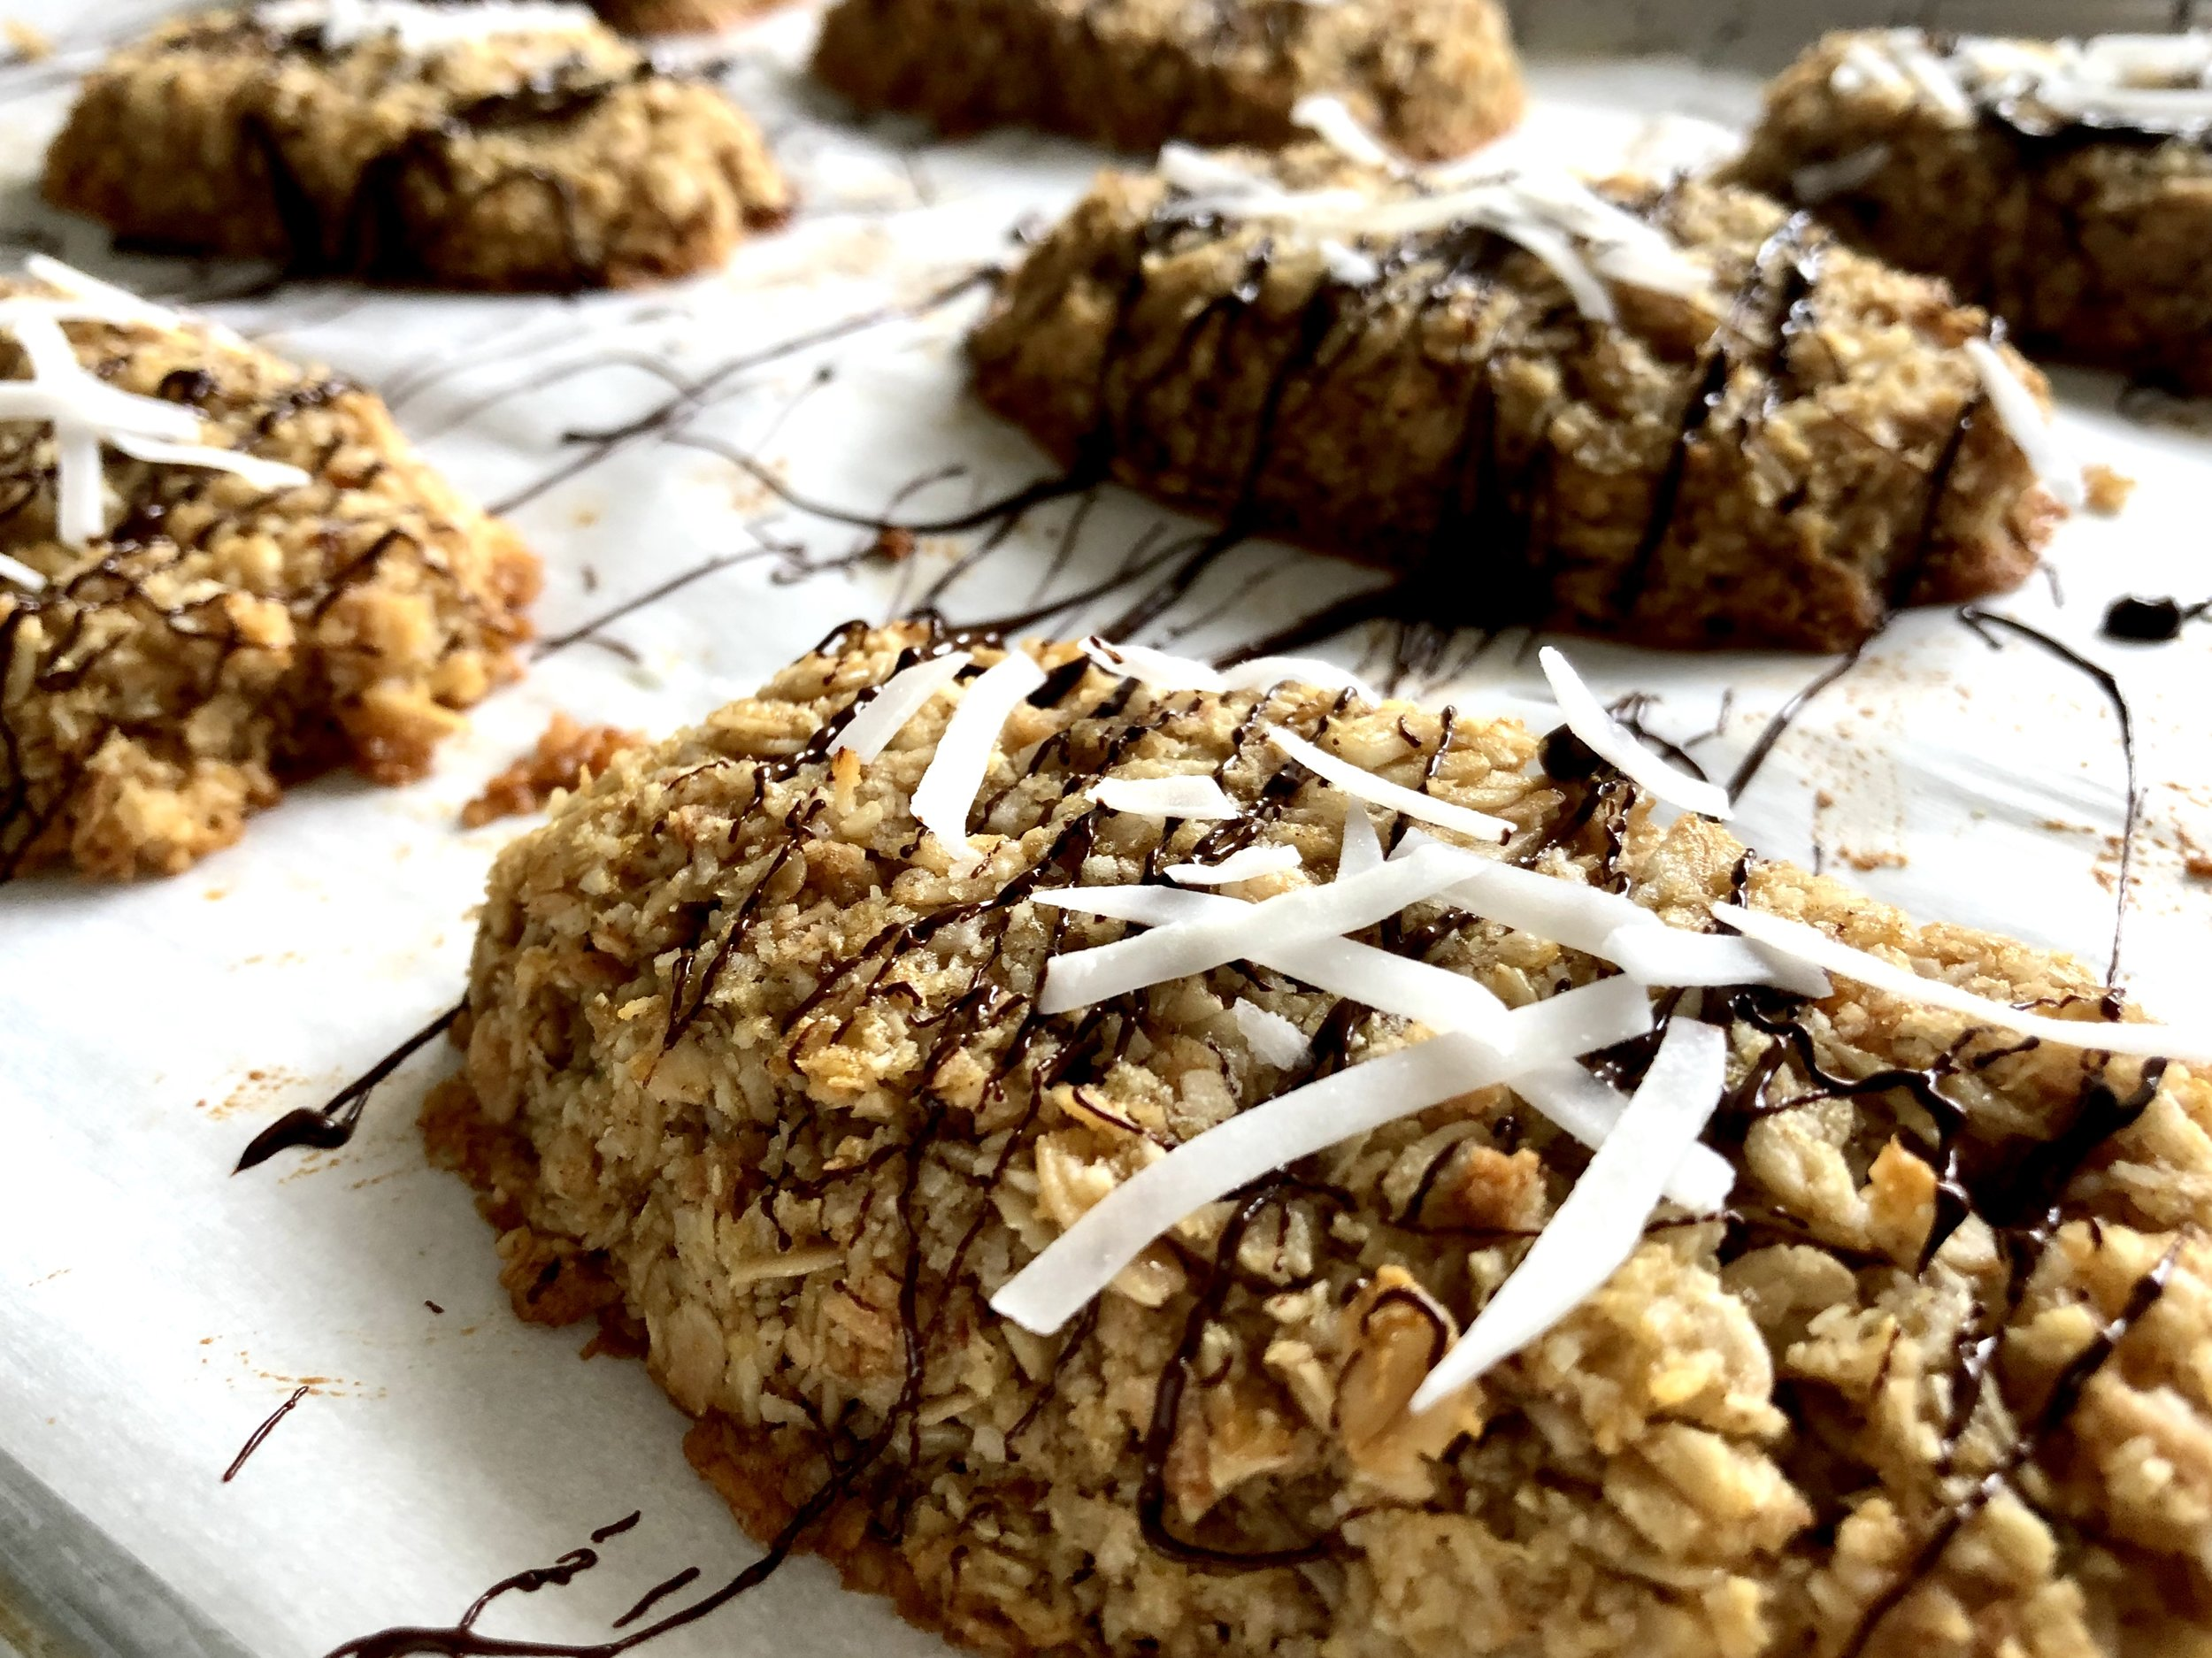 Honey toasted coconut breakfast bars with chocolate drizzle